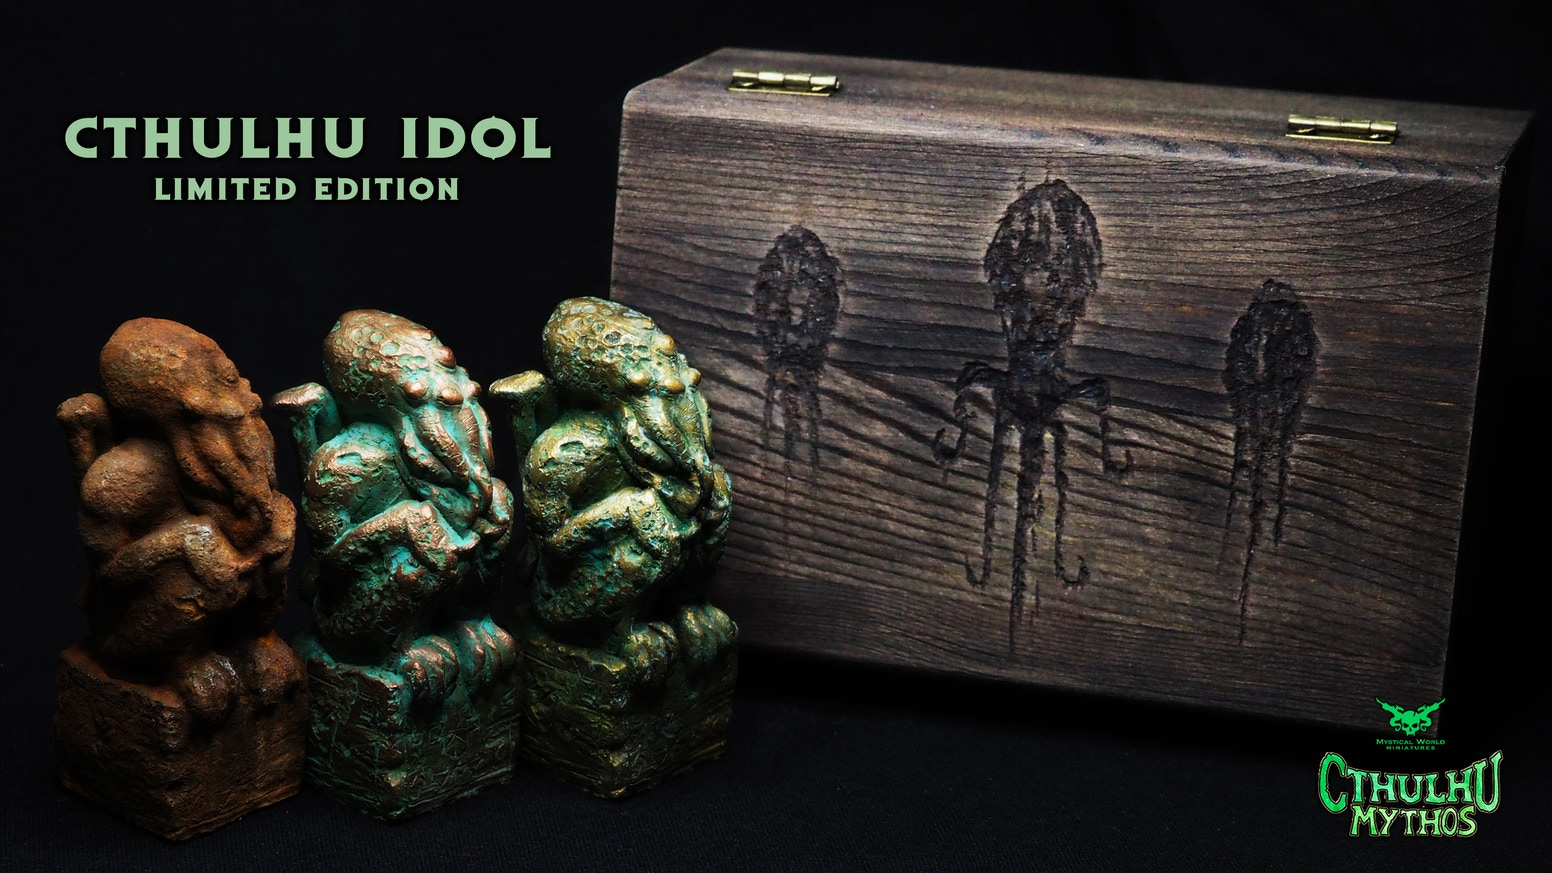 """We present our Cthulhu Idol inspired by """"The Call of Cthulhu"""", from glorious work Cthulhu Mythos, written by the great H.P. Lovecraft."""